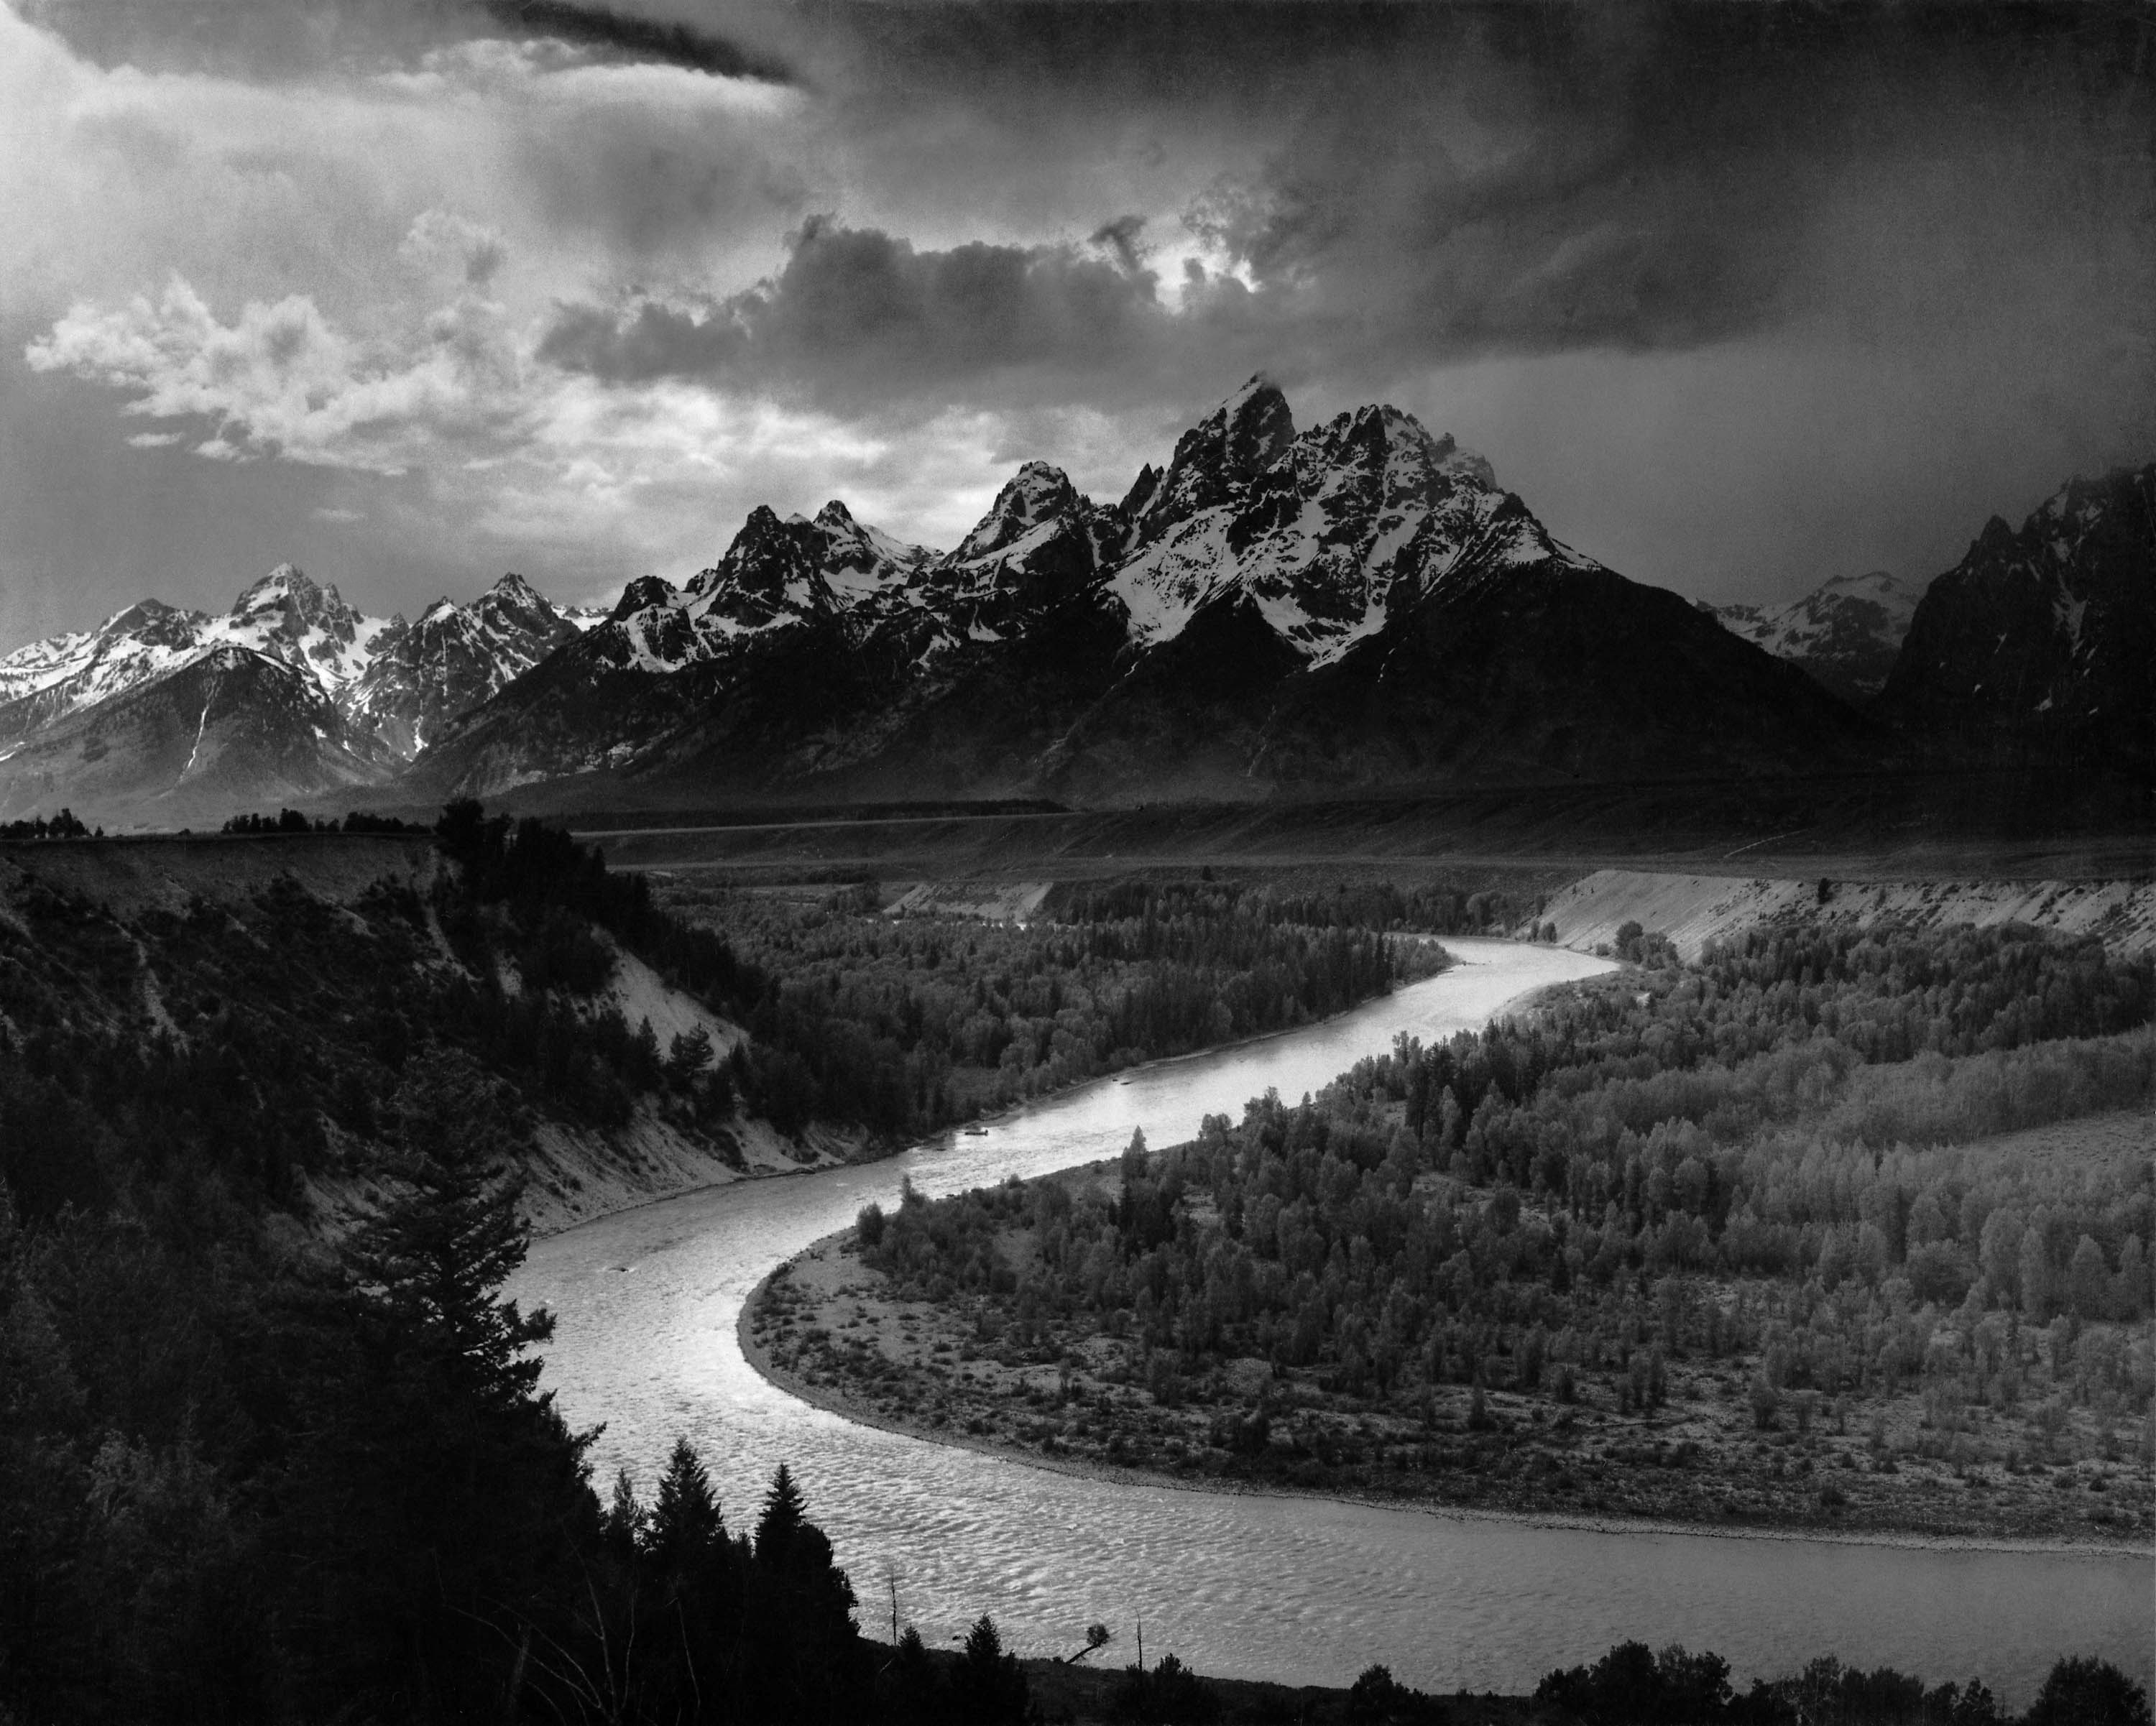 File:Adams The Tetons and the Snake River.jpg.